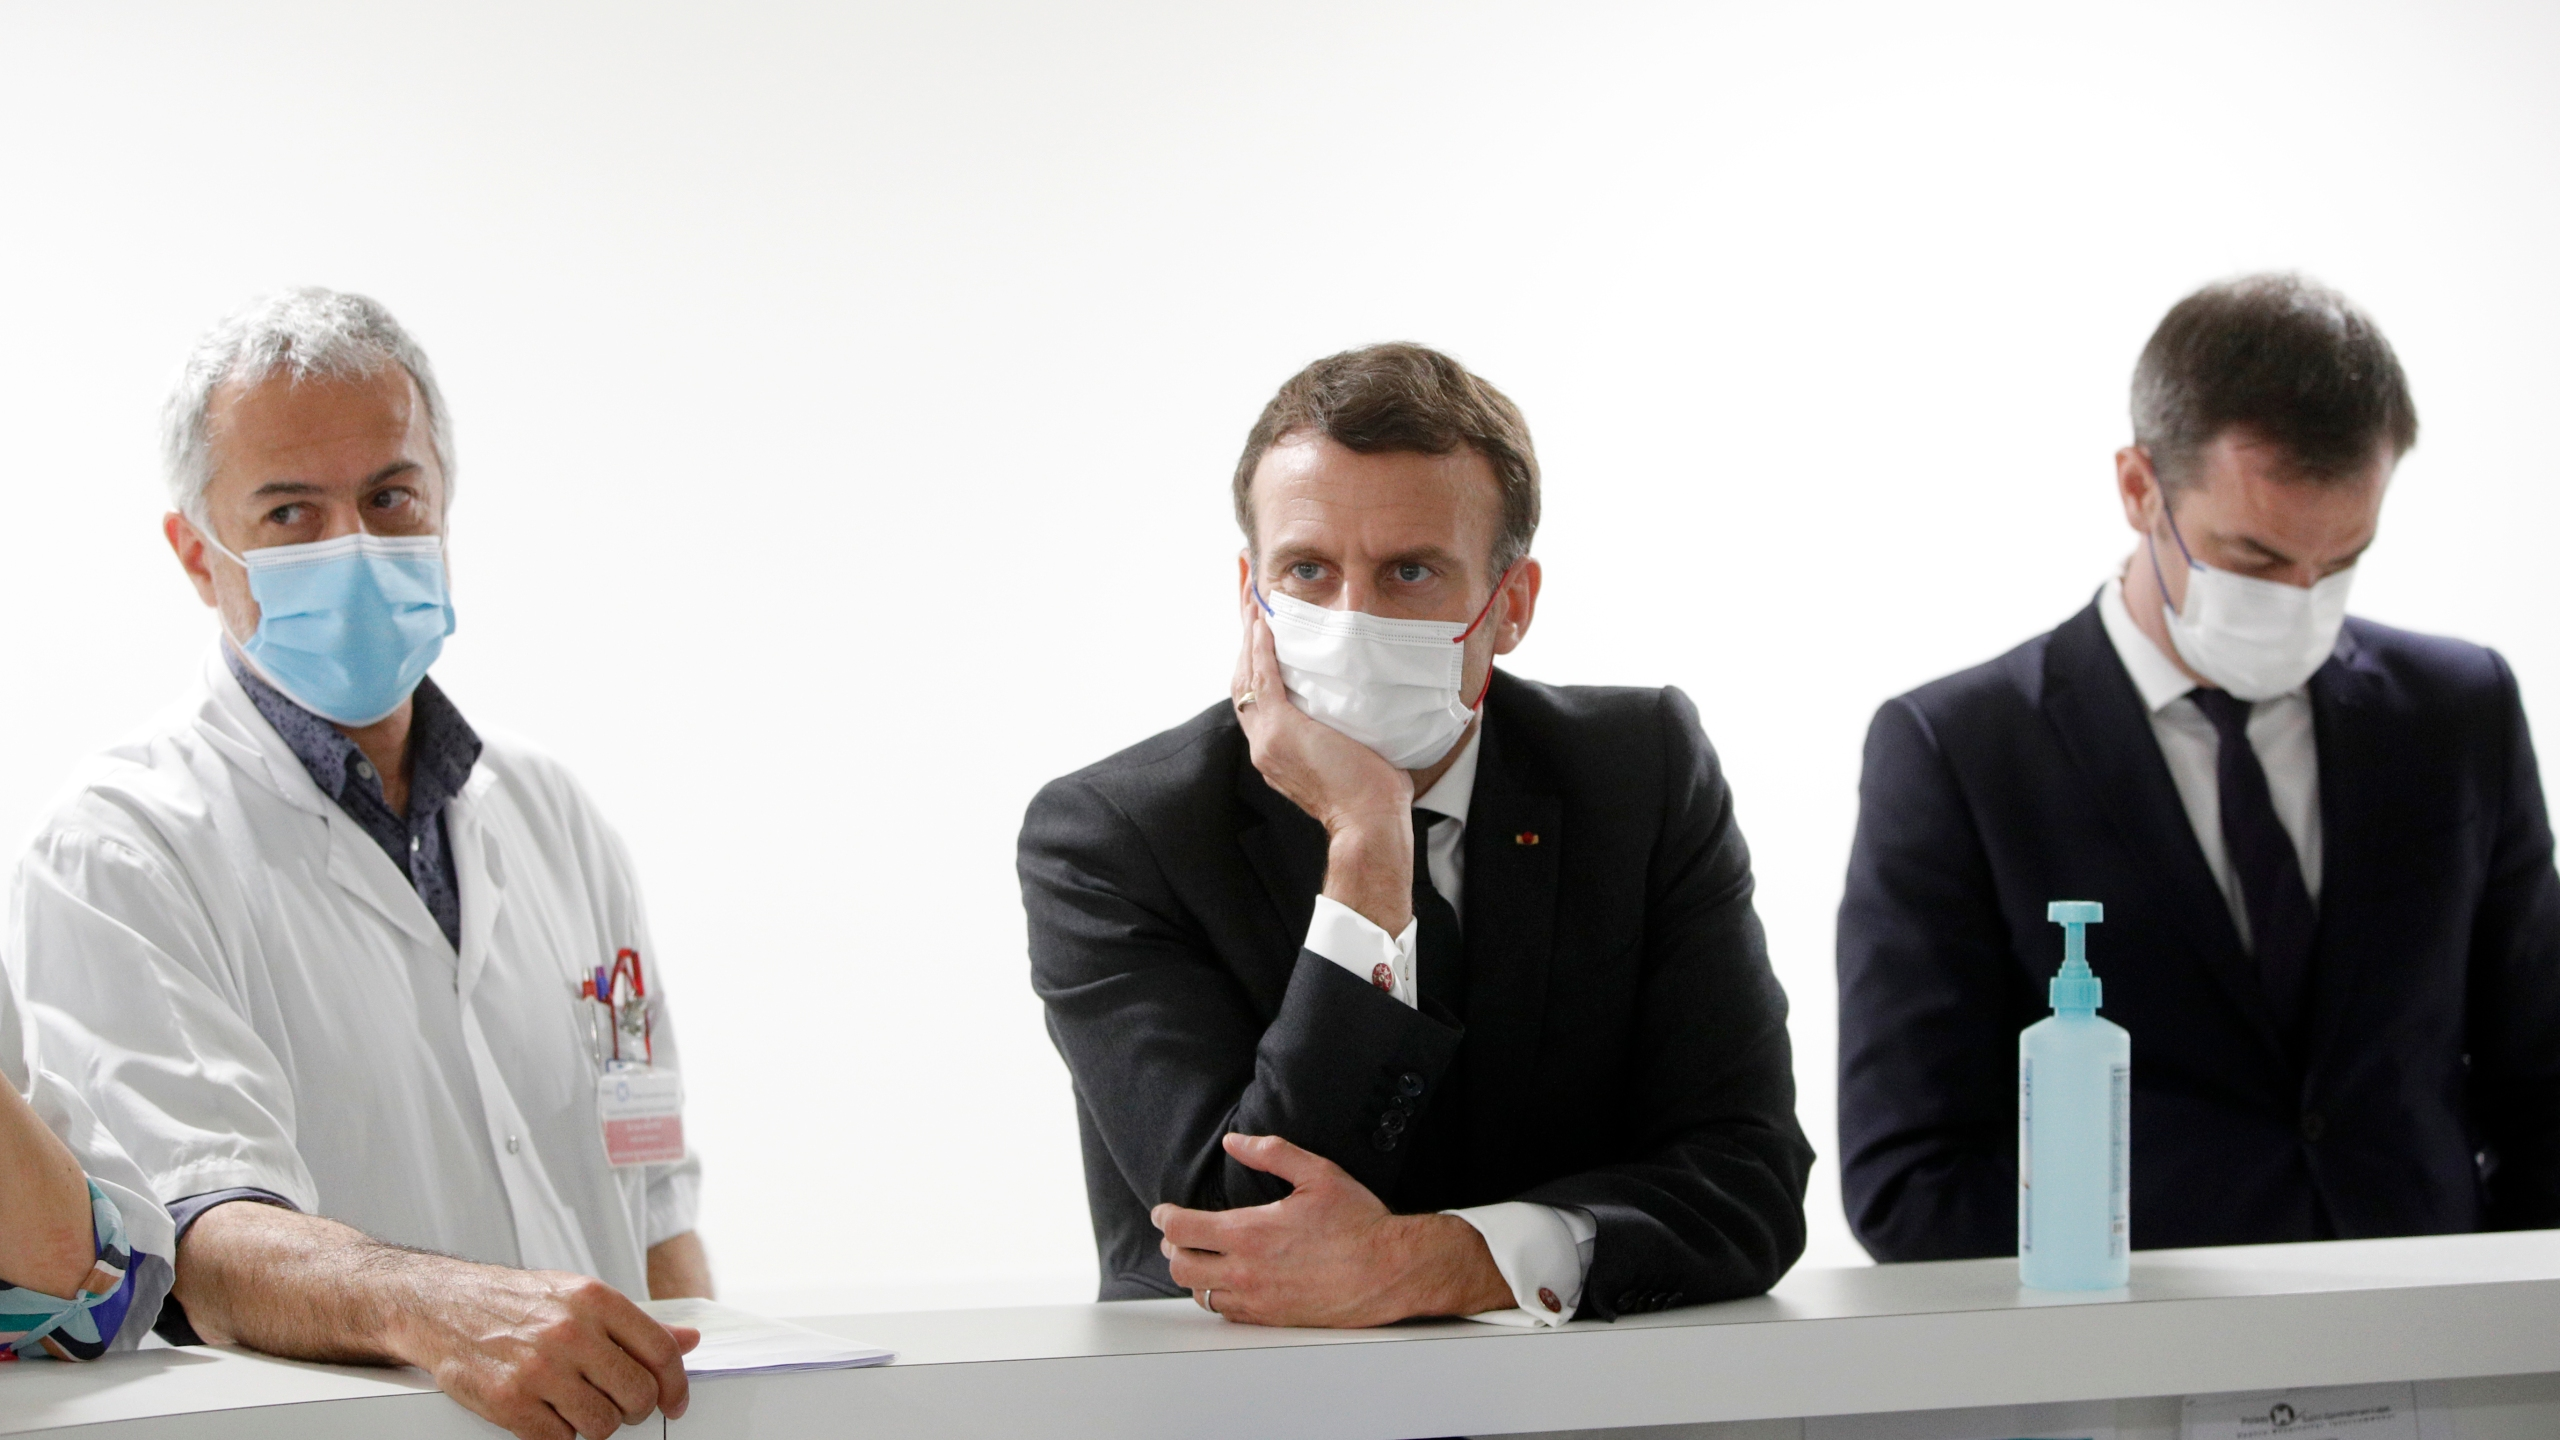 French President Macron visits Poissy/Saint Germain en Laye hospital